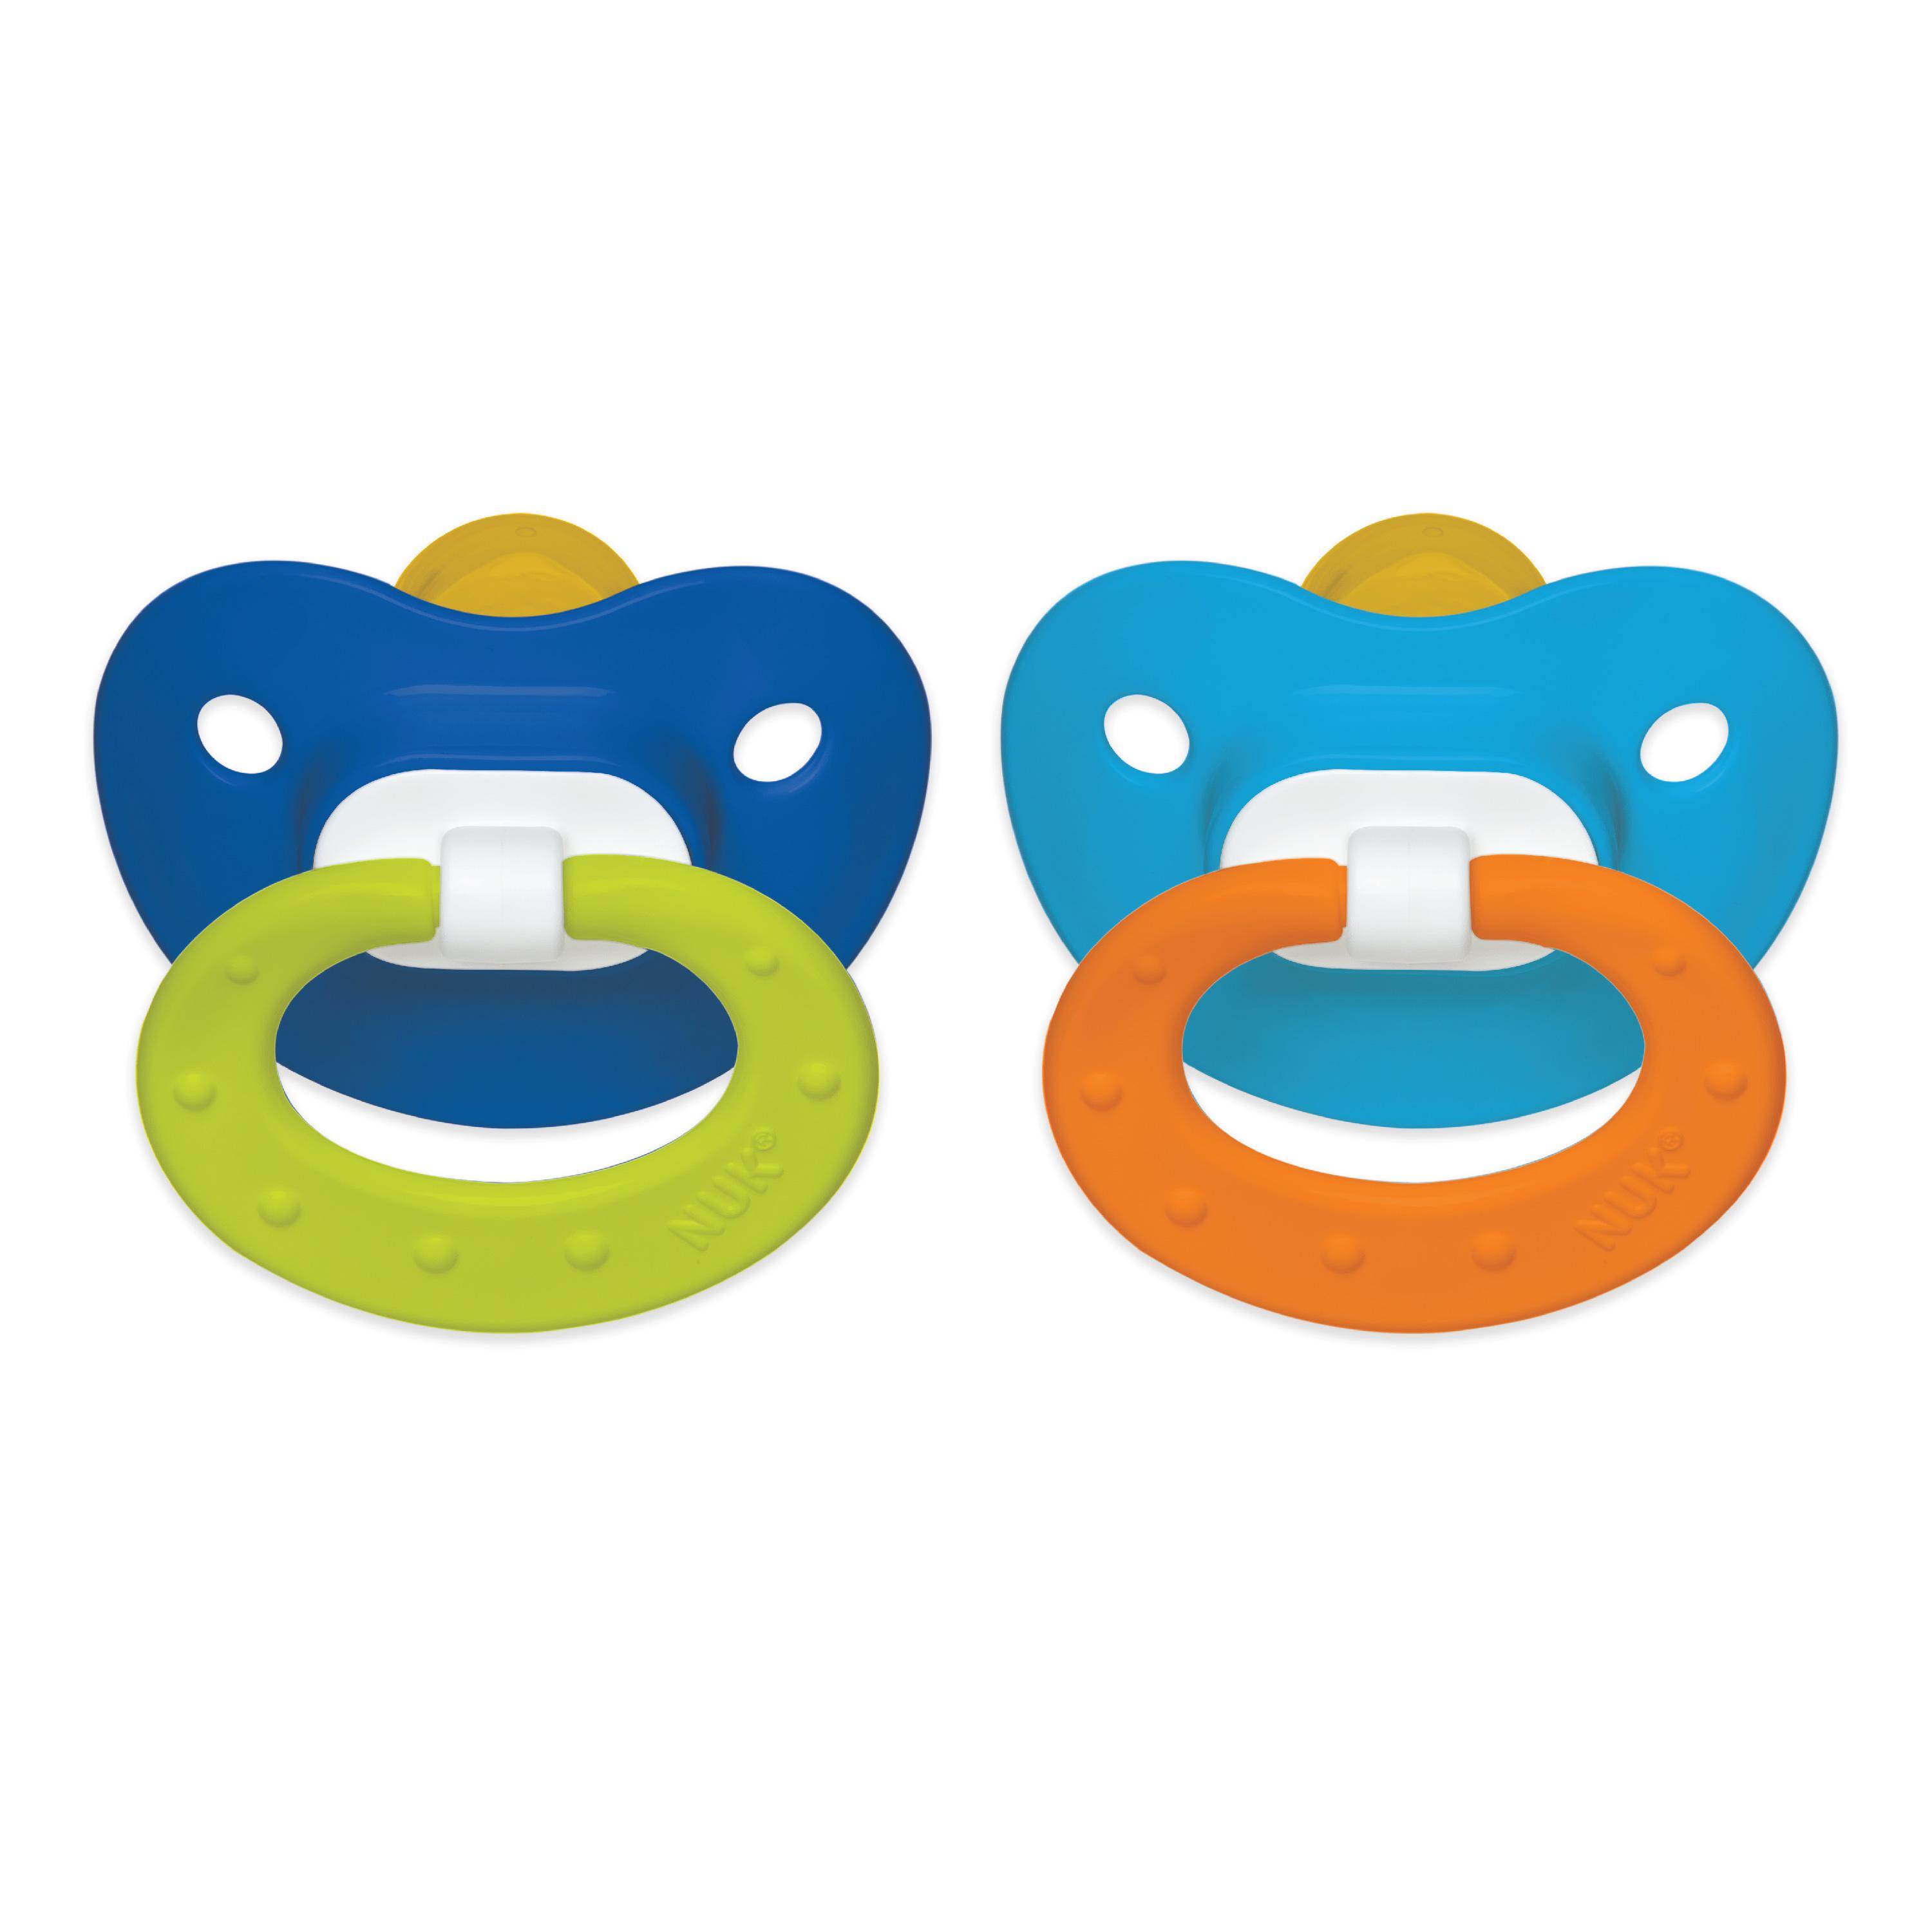 NUK Orthodontic Pacifier, 18-36 Months - 2 Counts